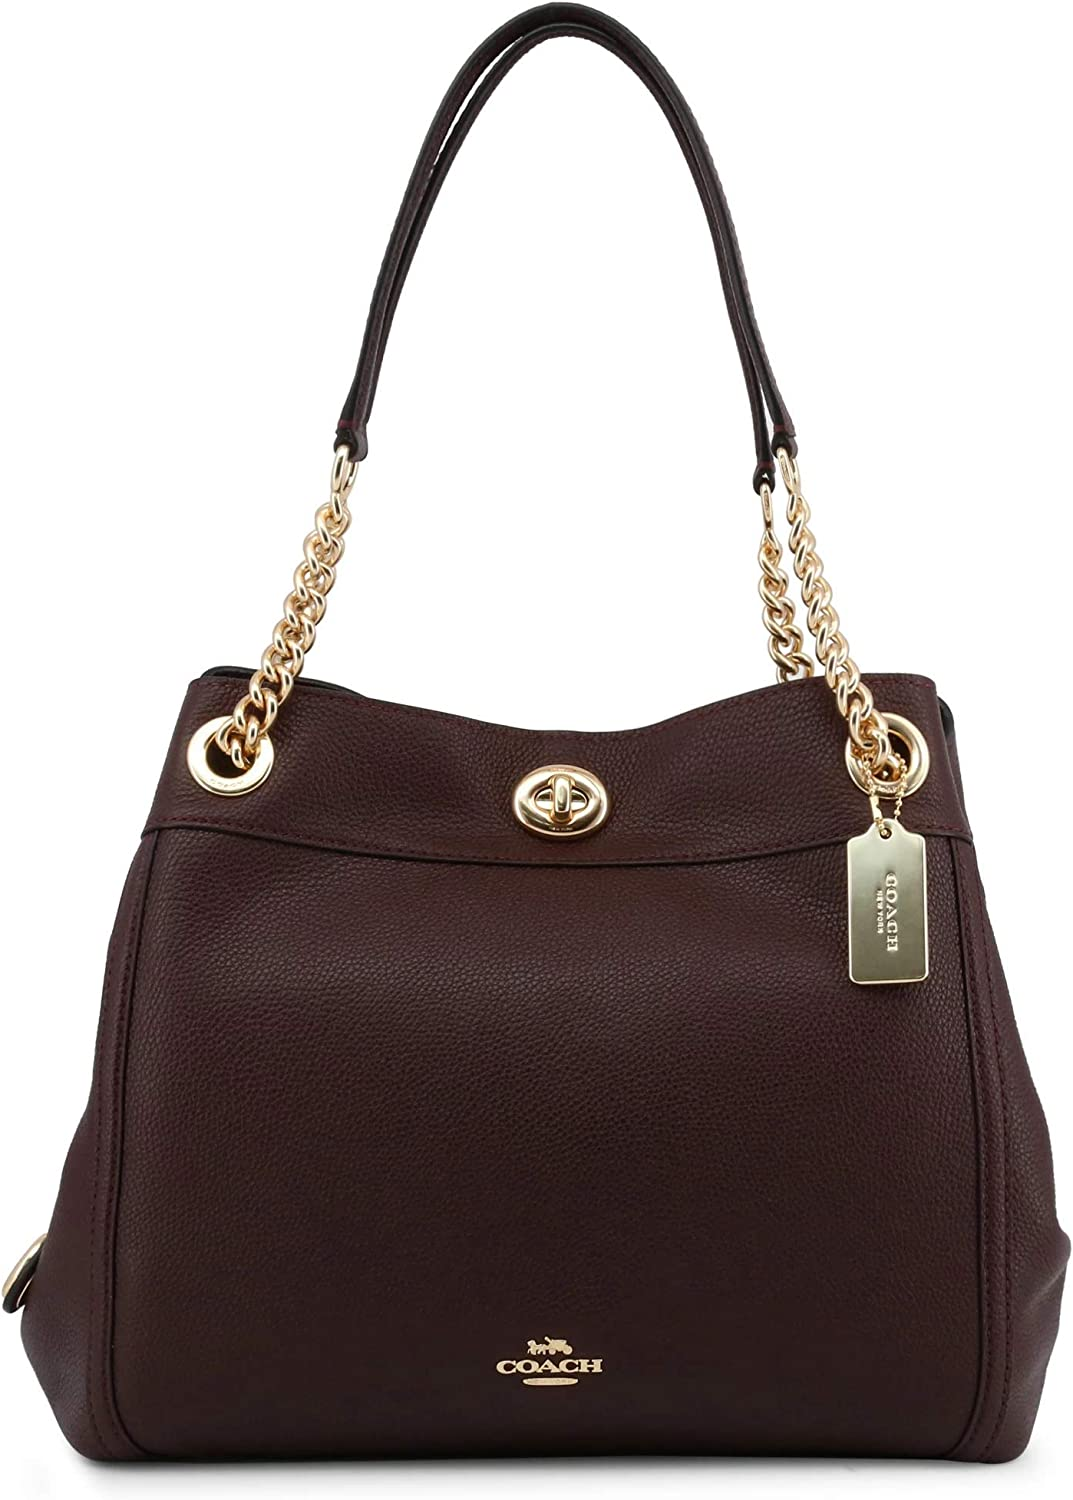 COACH Women's Turnlock Edie